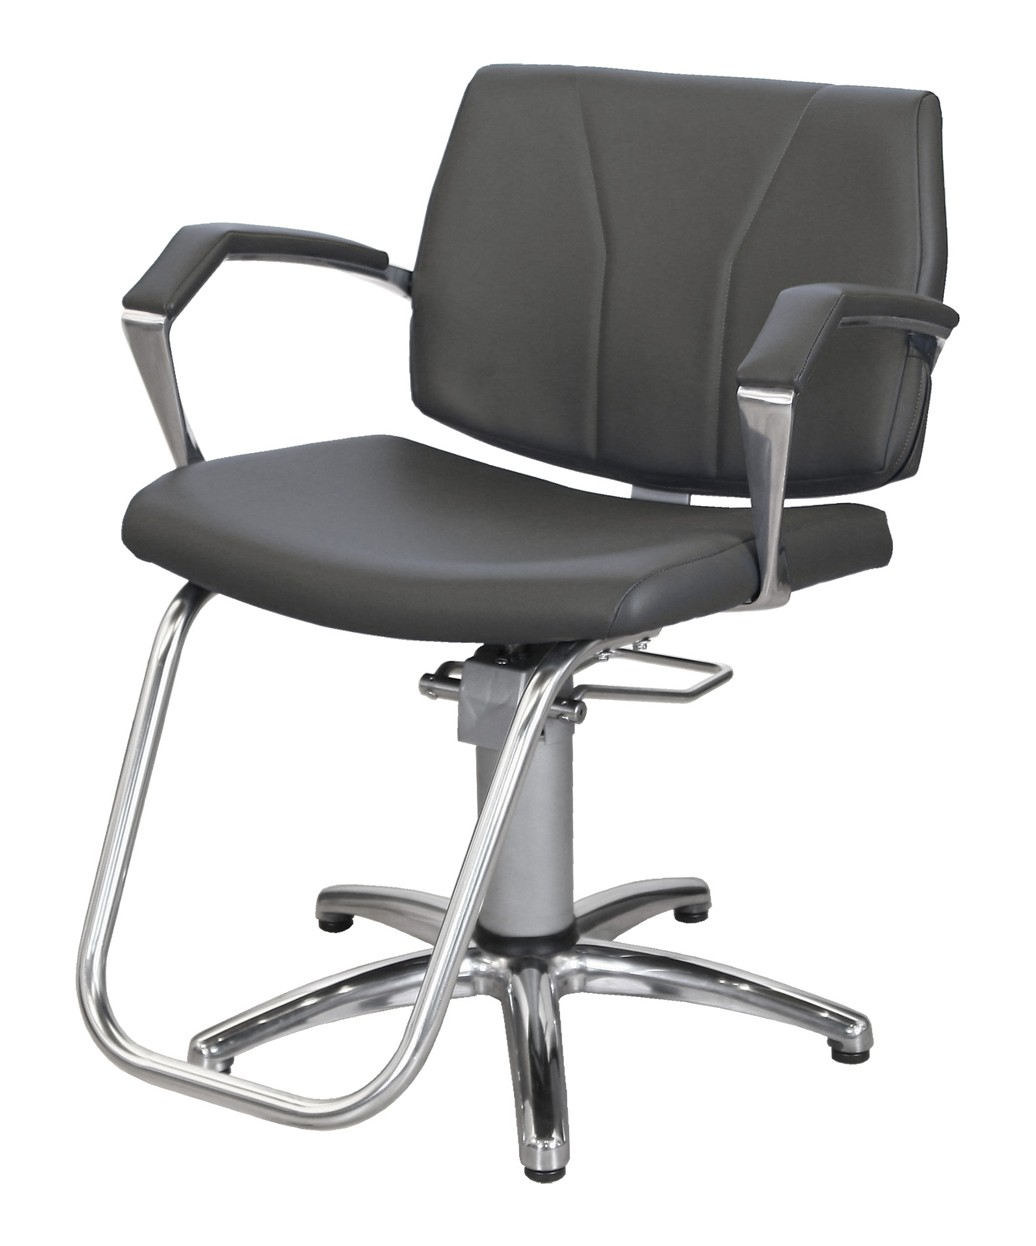 Collins 5200 Phenix Styling Chair